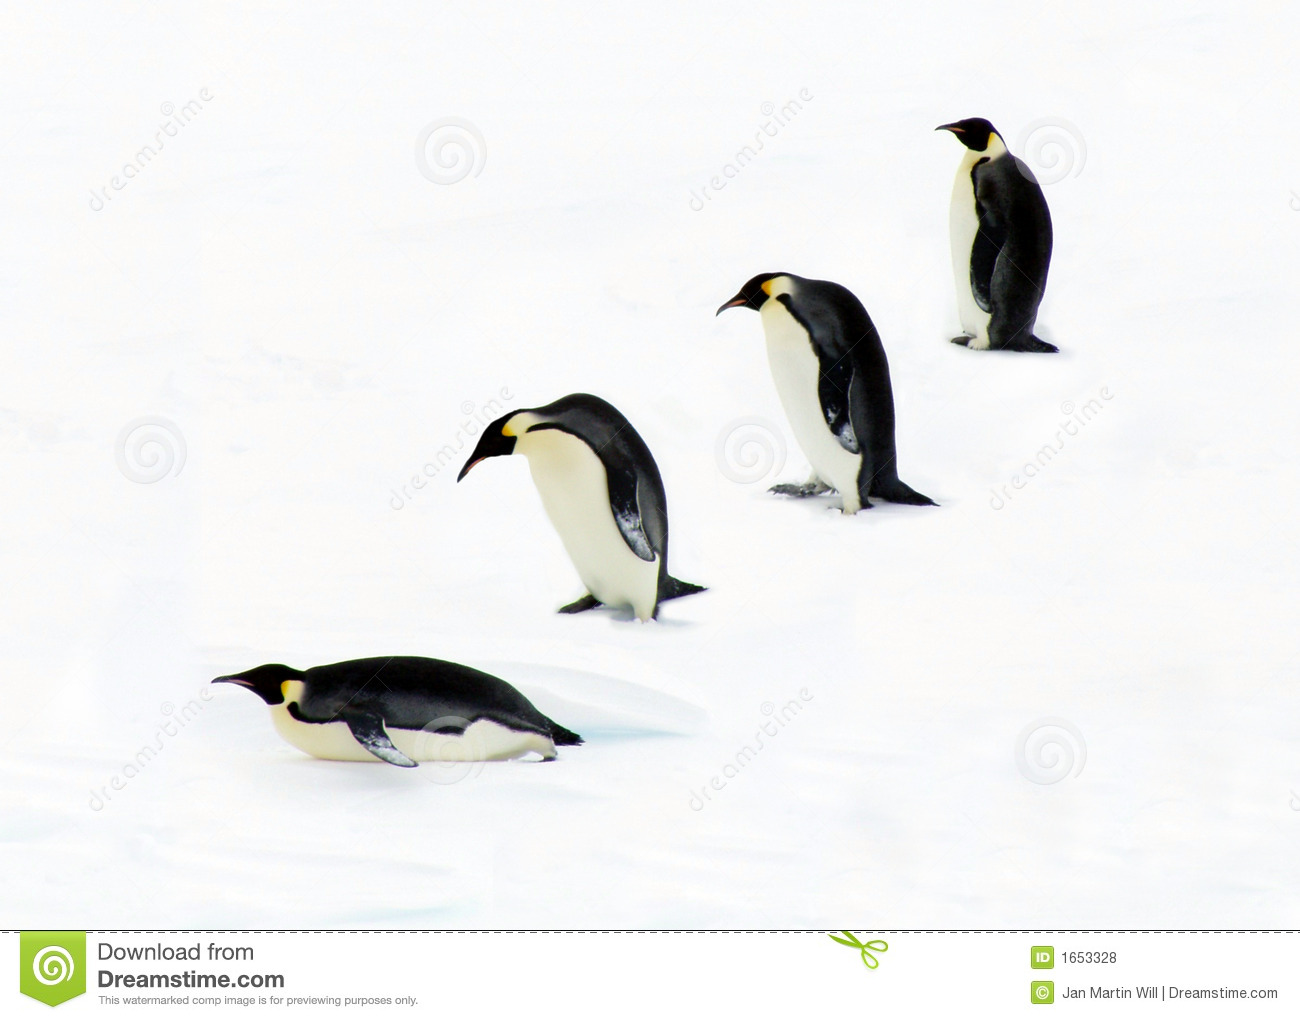 evolution of penguins Evolution of the emperor penguin by alyssa weick period 6 the emperor penguin, or aptenodytes forsteri, lives in the freezing waters and fast ice of antarctica and is the only penguin to breed in the antarctic during the winter.